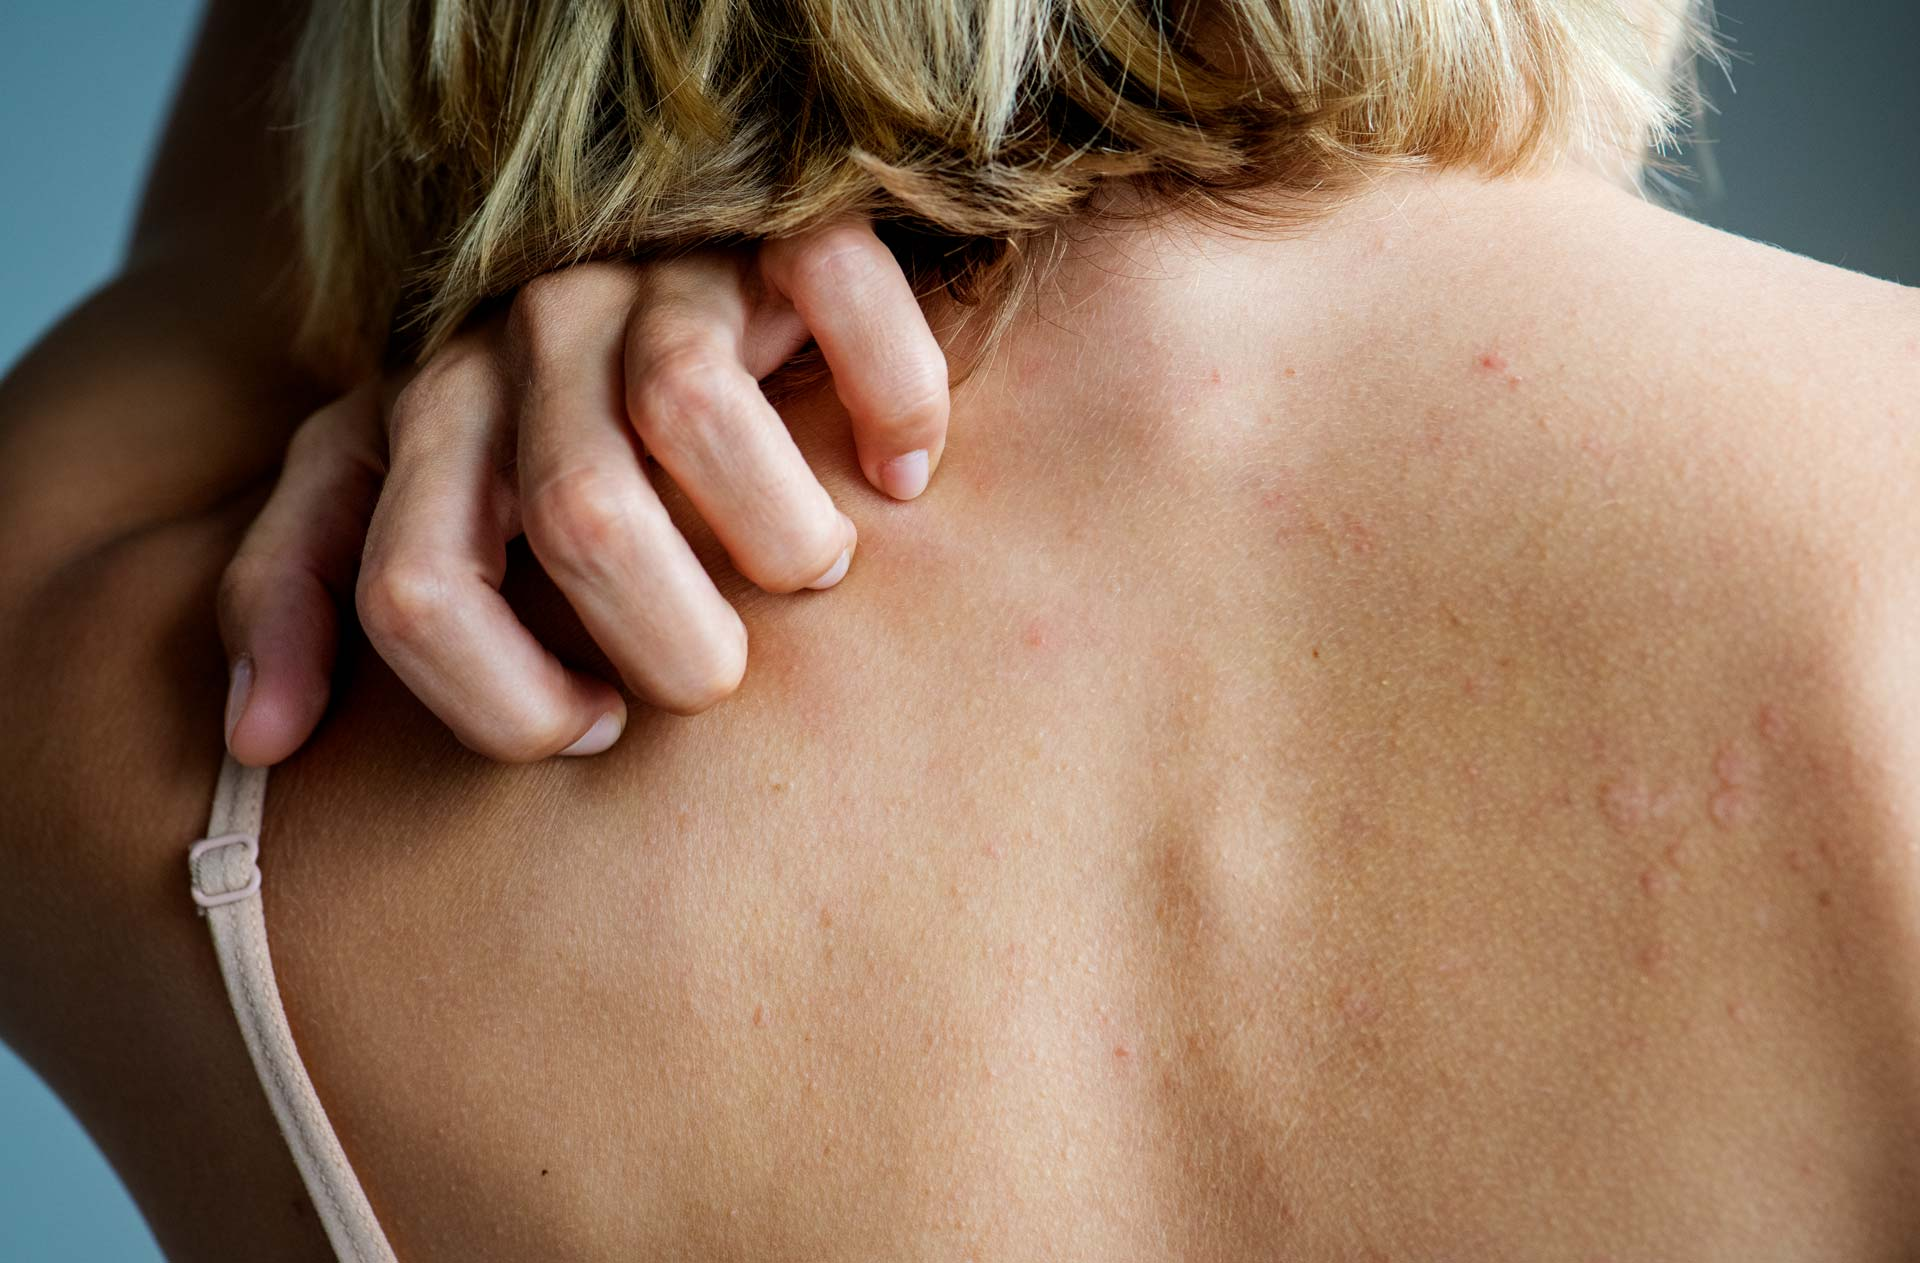 Image of woman scratching her back because of hives.